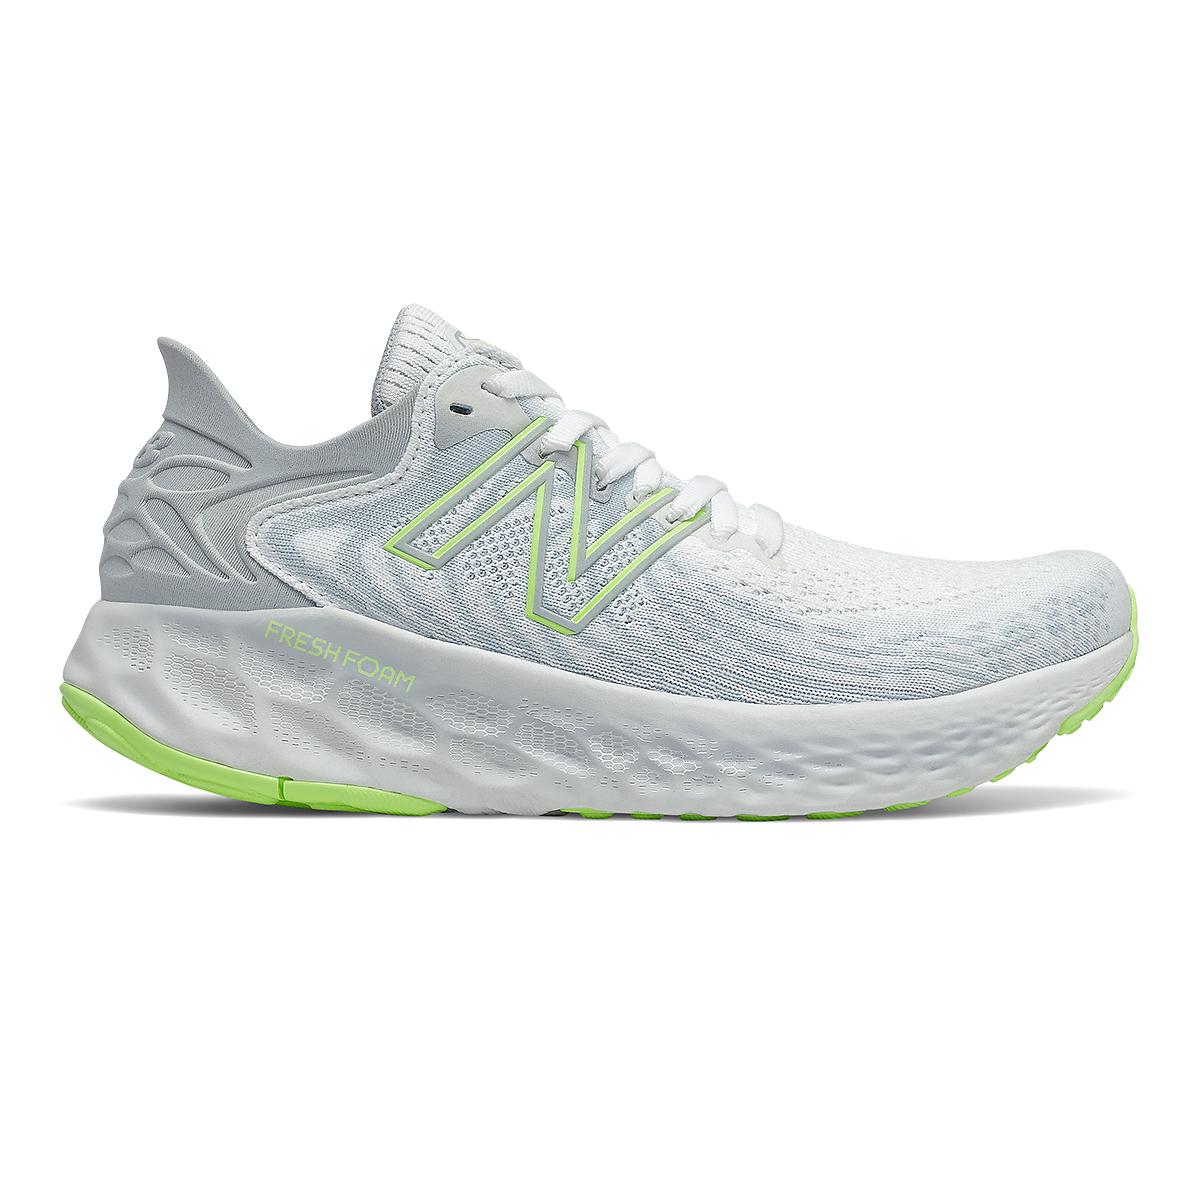 Women's New Balance 1080v11 Running Shoe - Color: White/Bleached Lime Glo - Size: 5 - Width: Narrow, White/Bleached Lime Glo, large, image 1